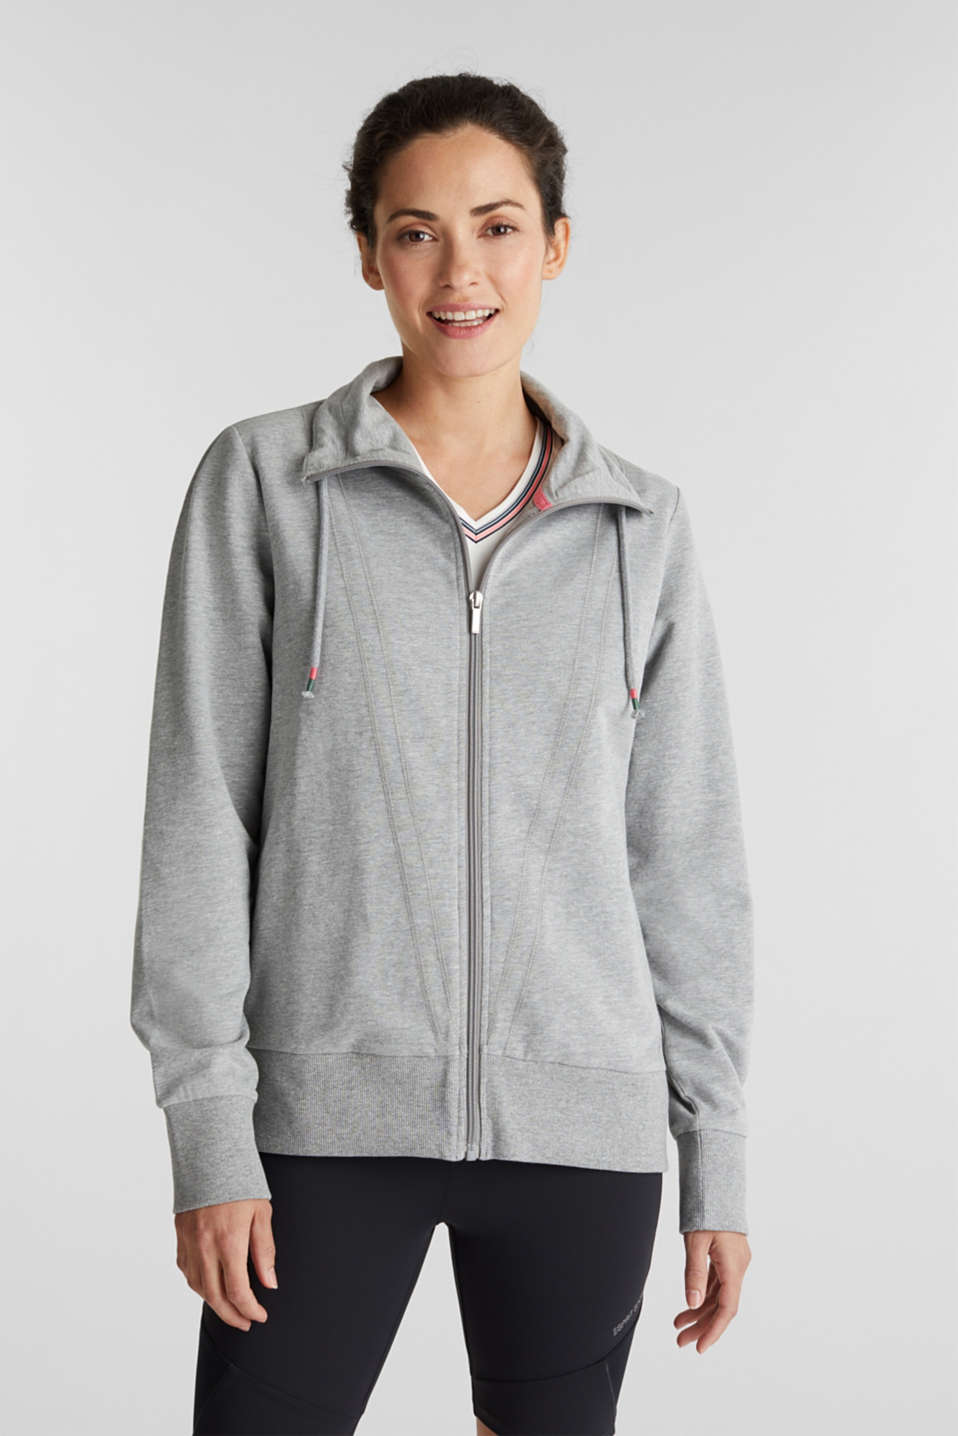 Esprit - Melange sweatshirt jacket with a drawstring collar